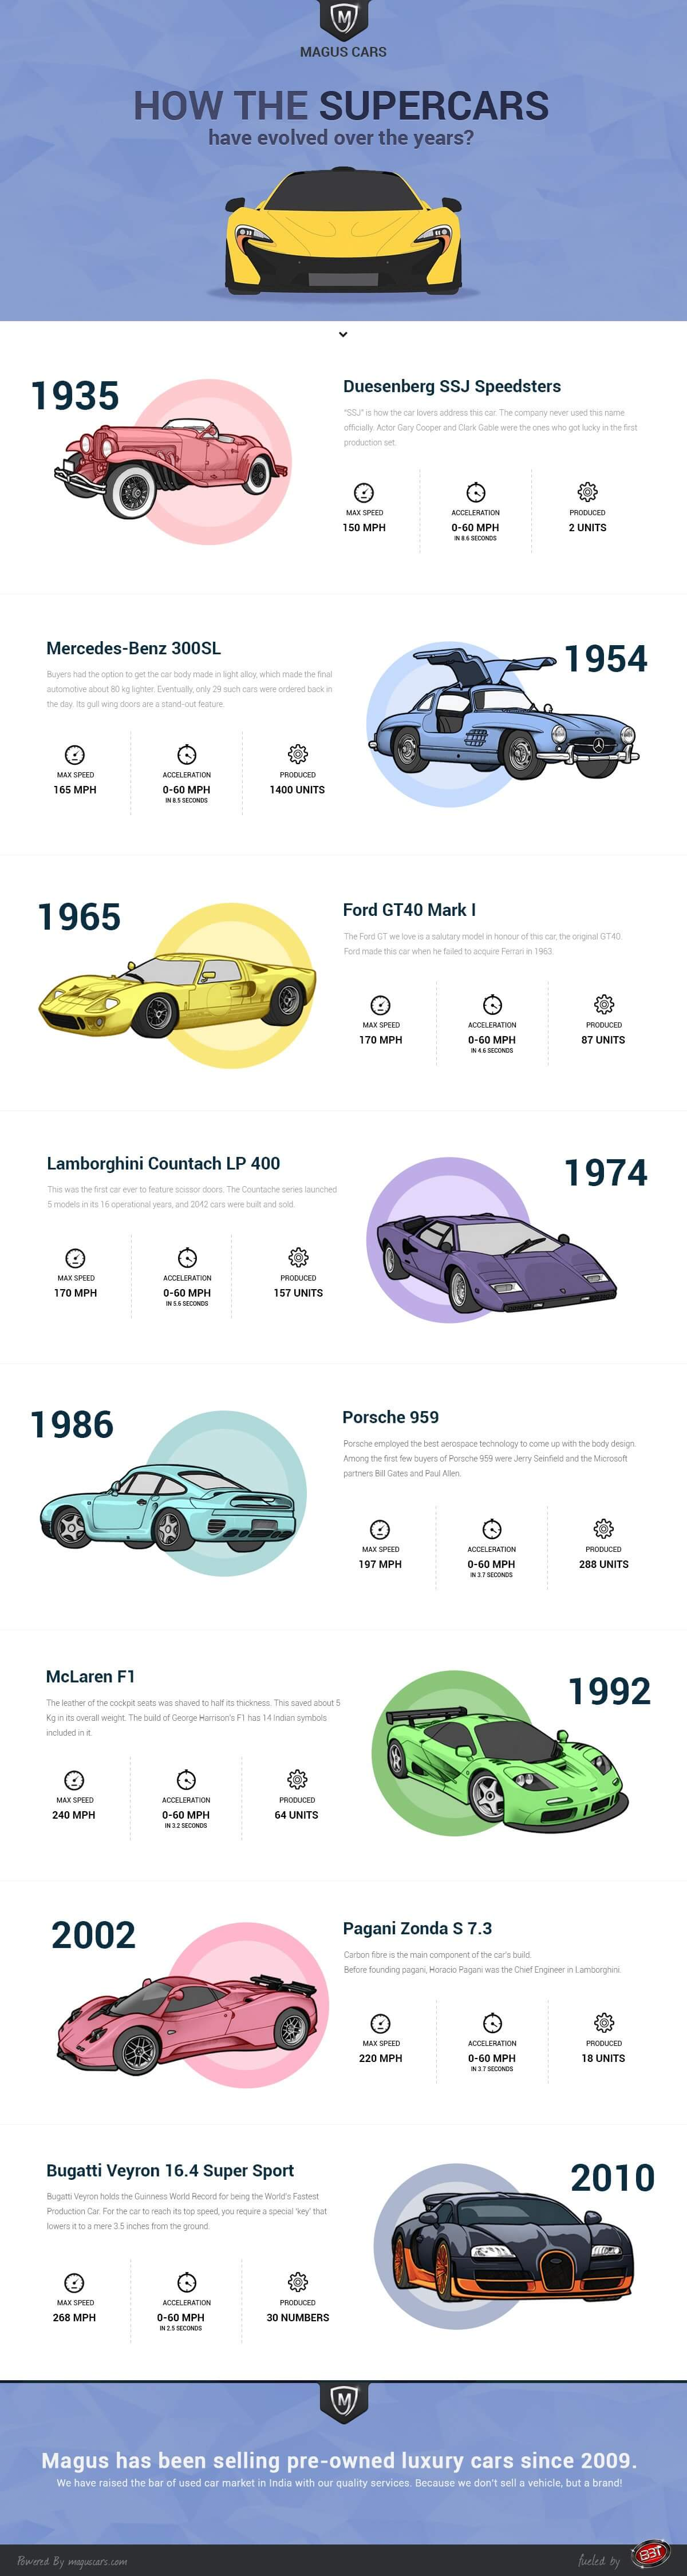 how-the-supercars-have-evolved-over-the-years-infographic